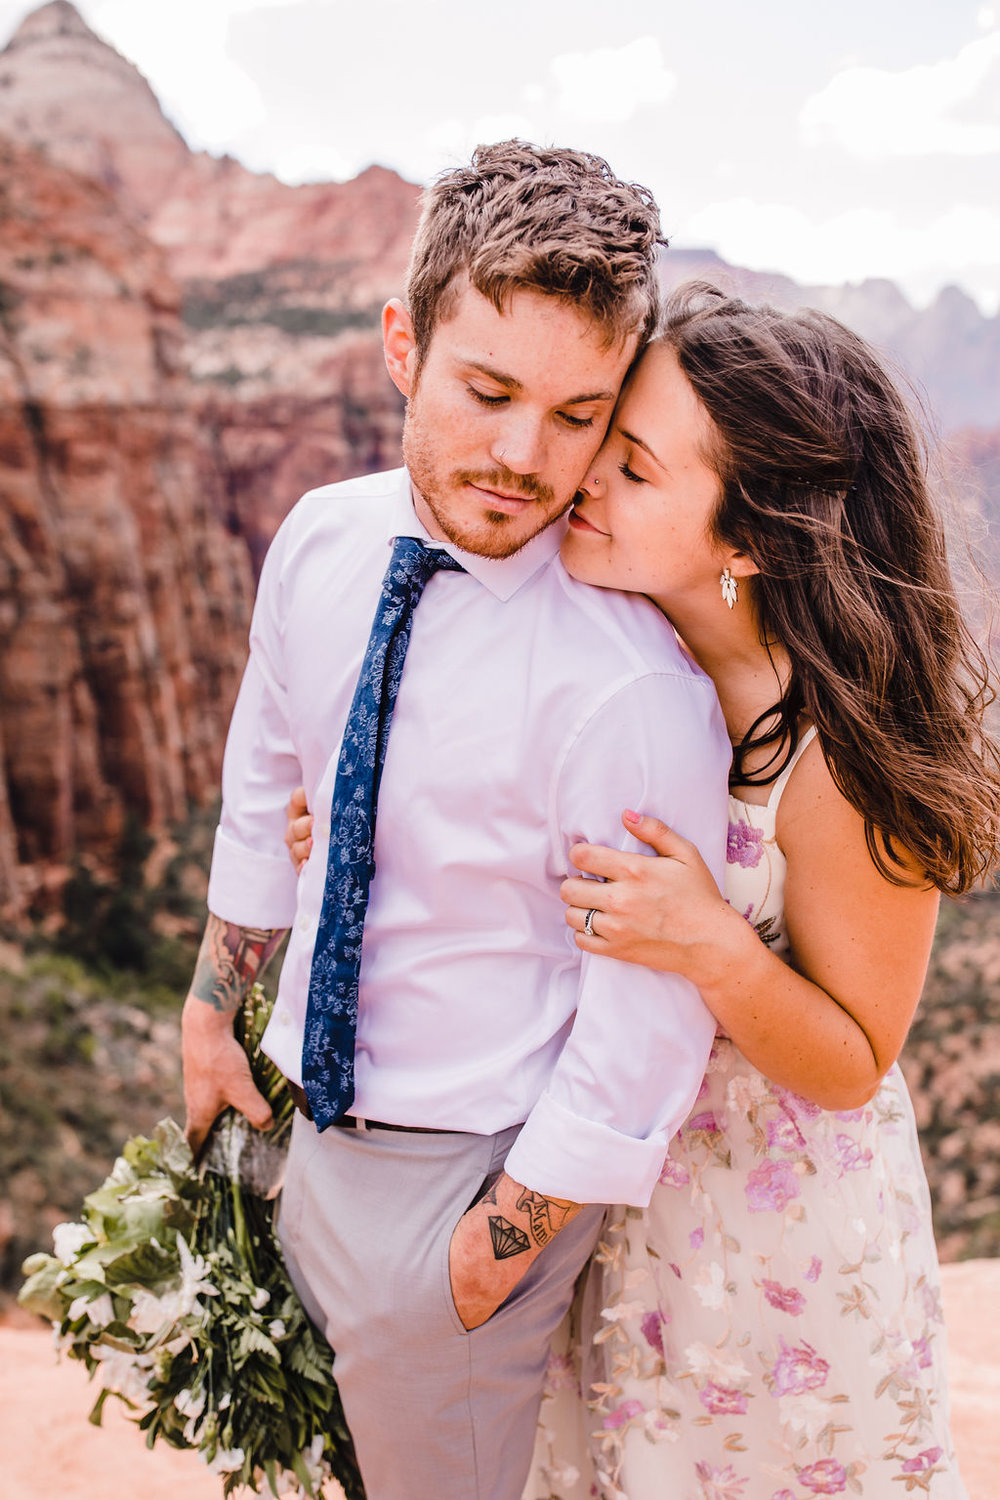 professional grand canyon formal photographer pink floral wedding dress red rocks kissing romantic